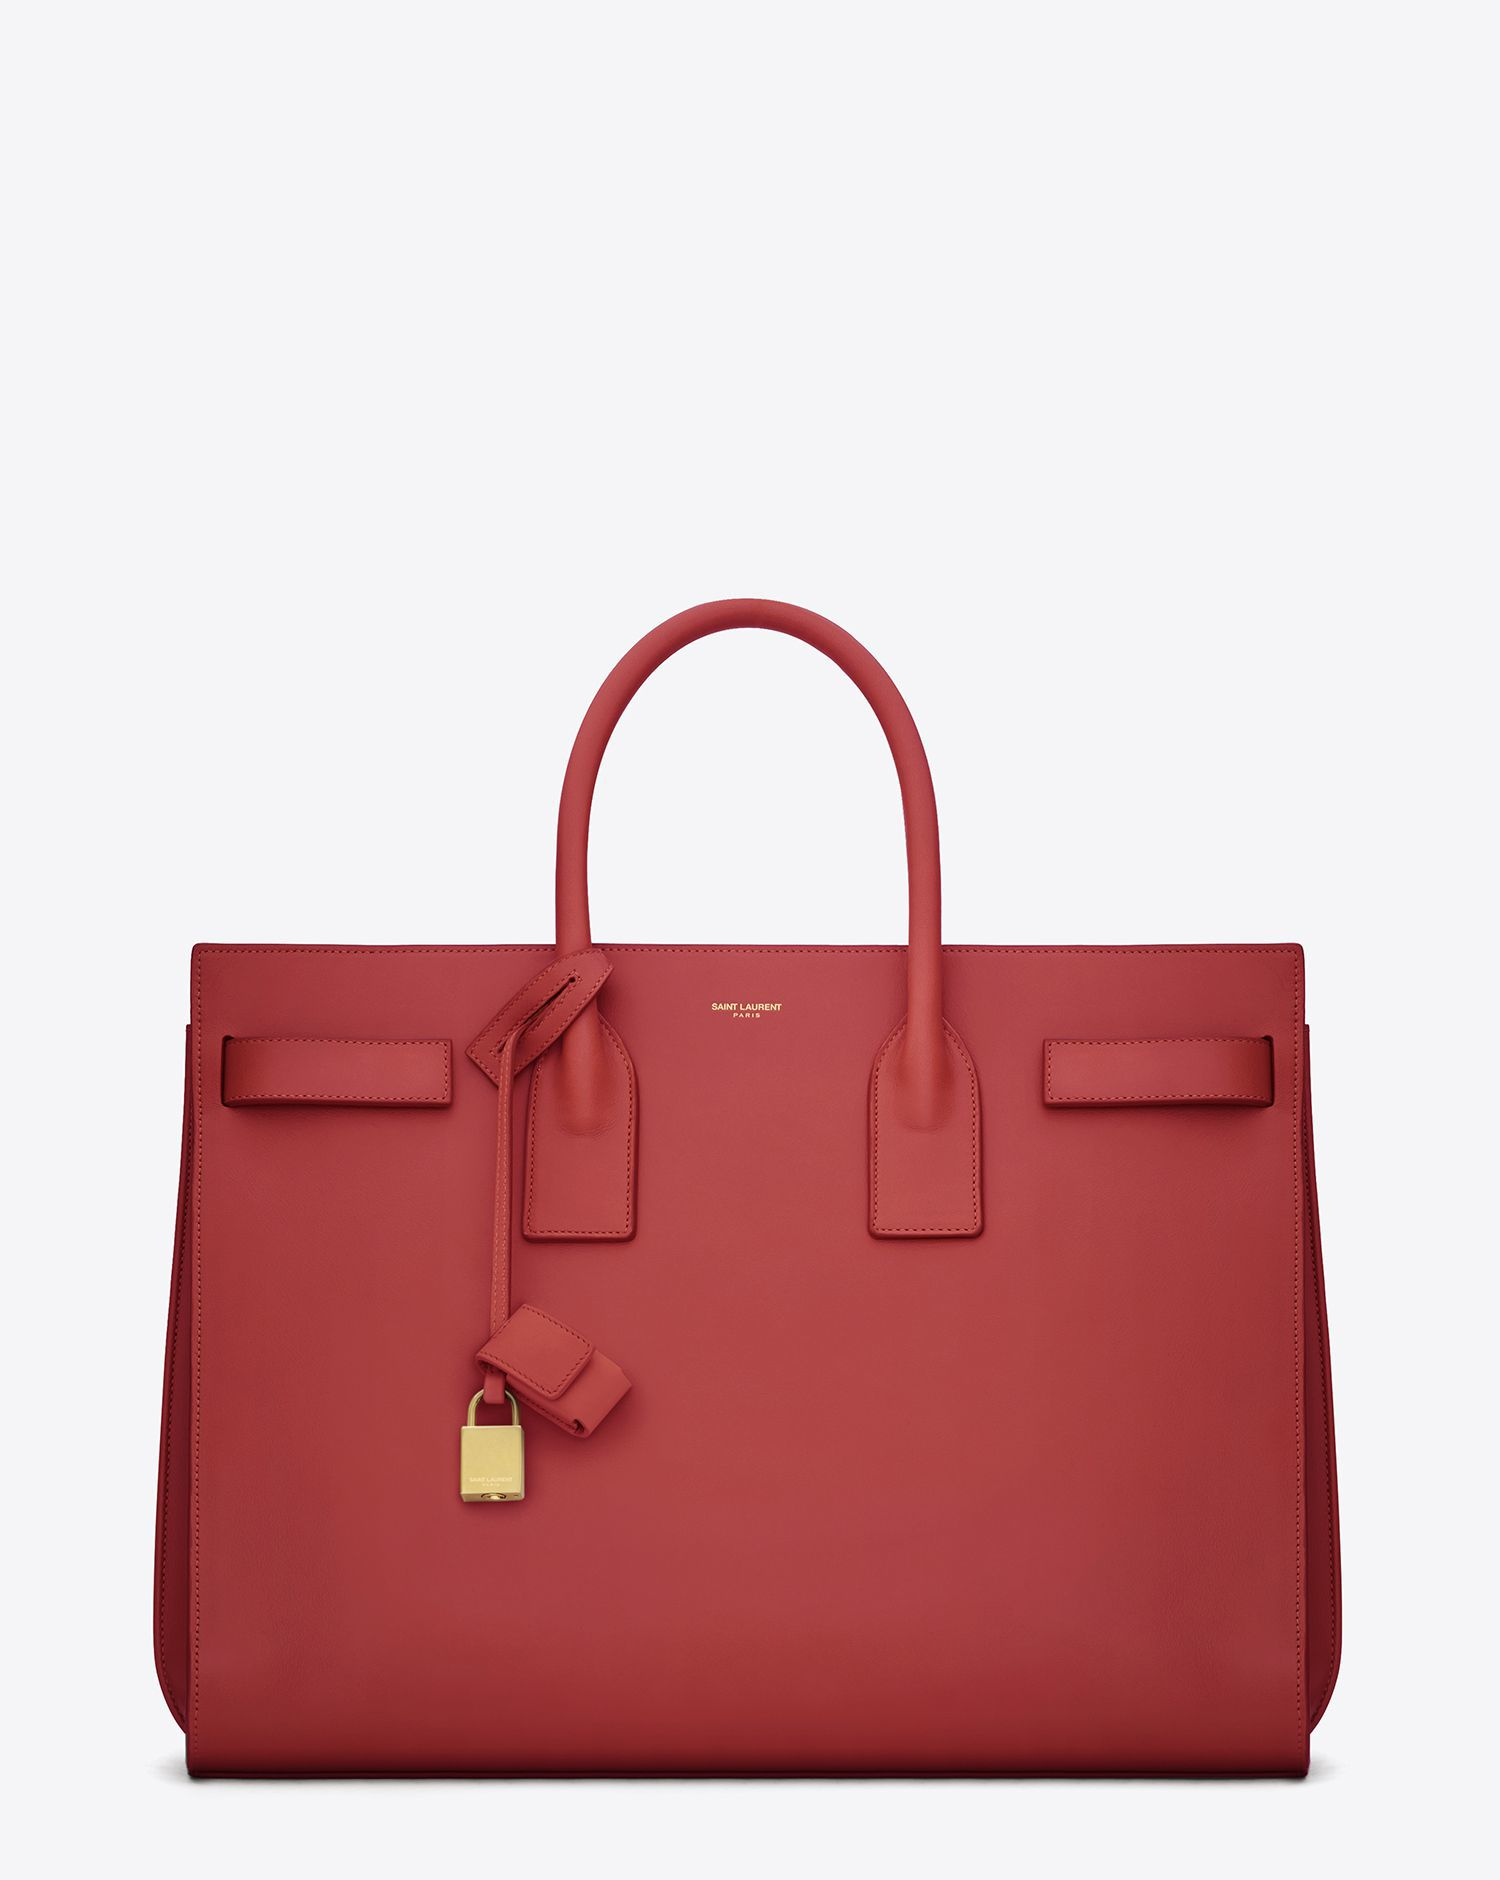 Saint Laurent Classic Sac De Jour Red Leather. Price:$2,950 YSL.COM